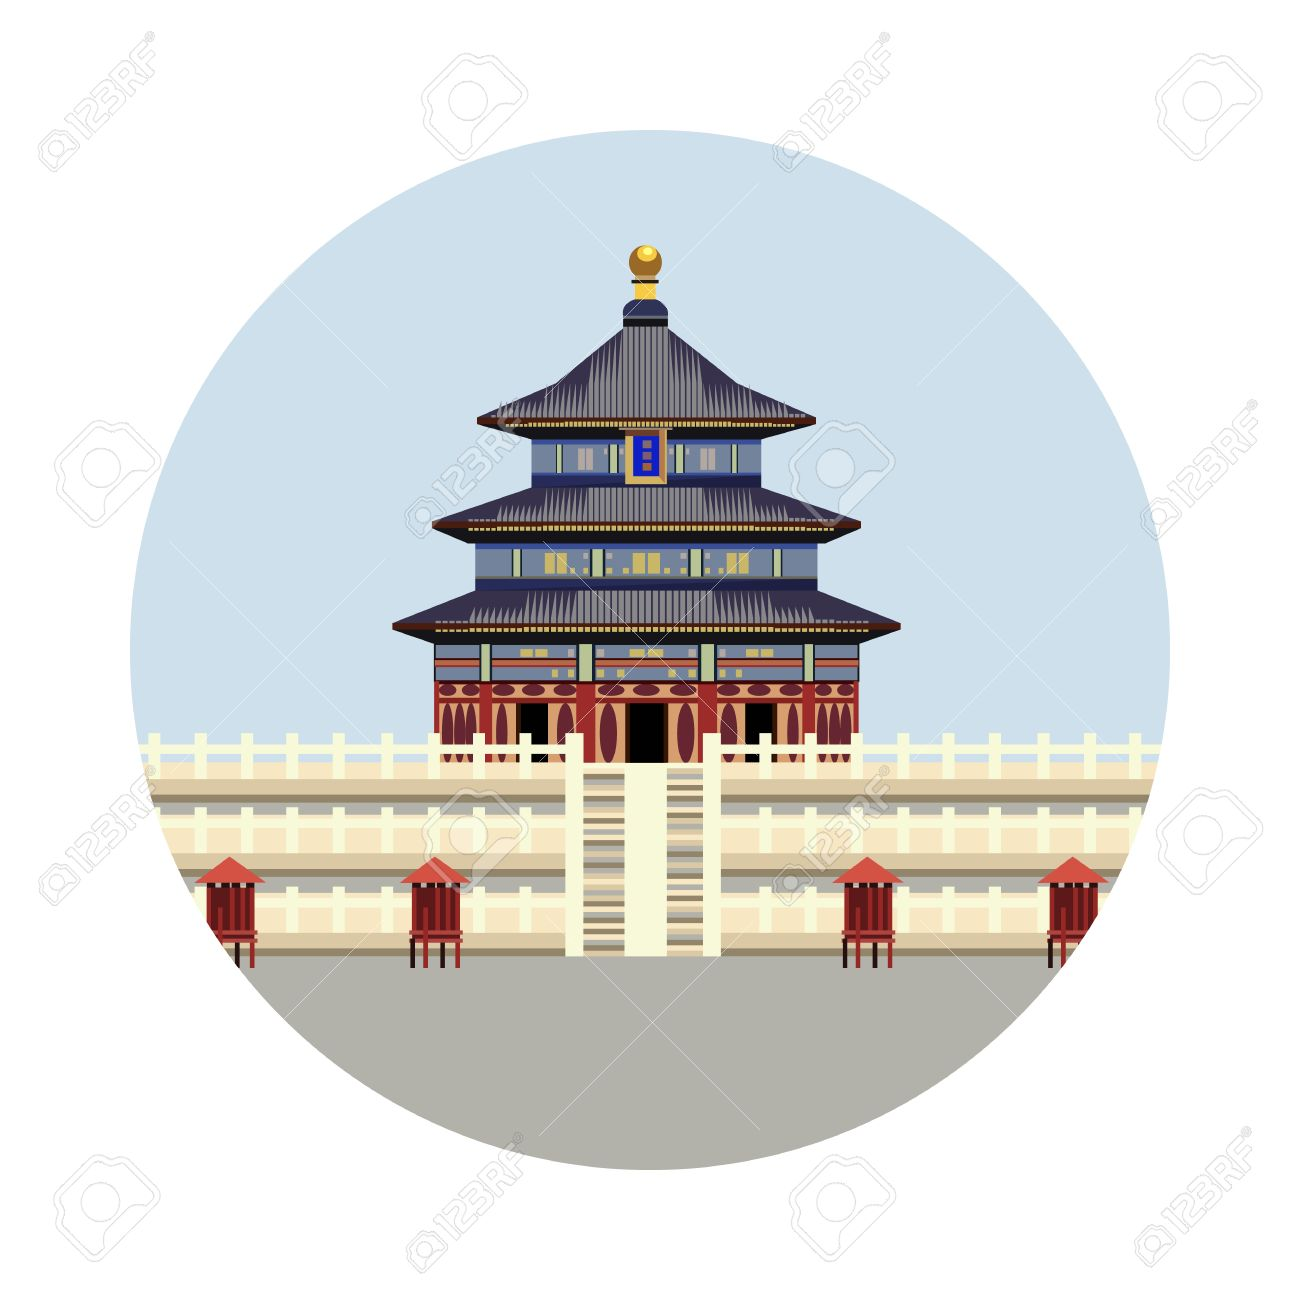 Temple of heaven icon isolated on white background vector china landmark symbol touristic asian temple temple of heaven icon isolated on white background vector illustration for famous building design buycottarizona Gallery